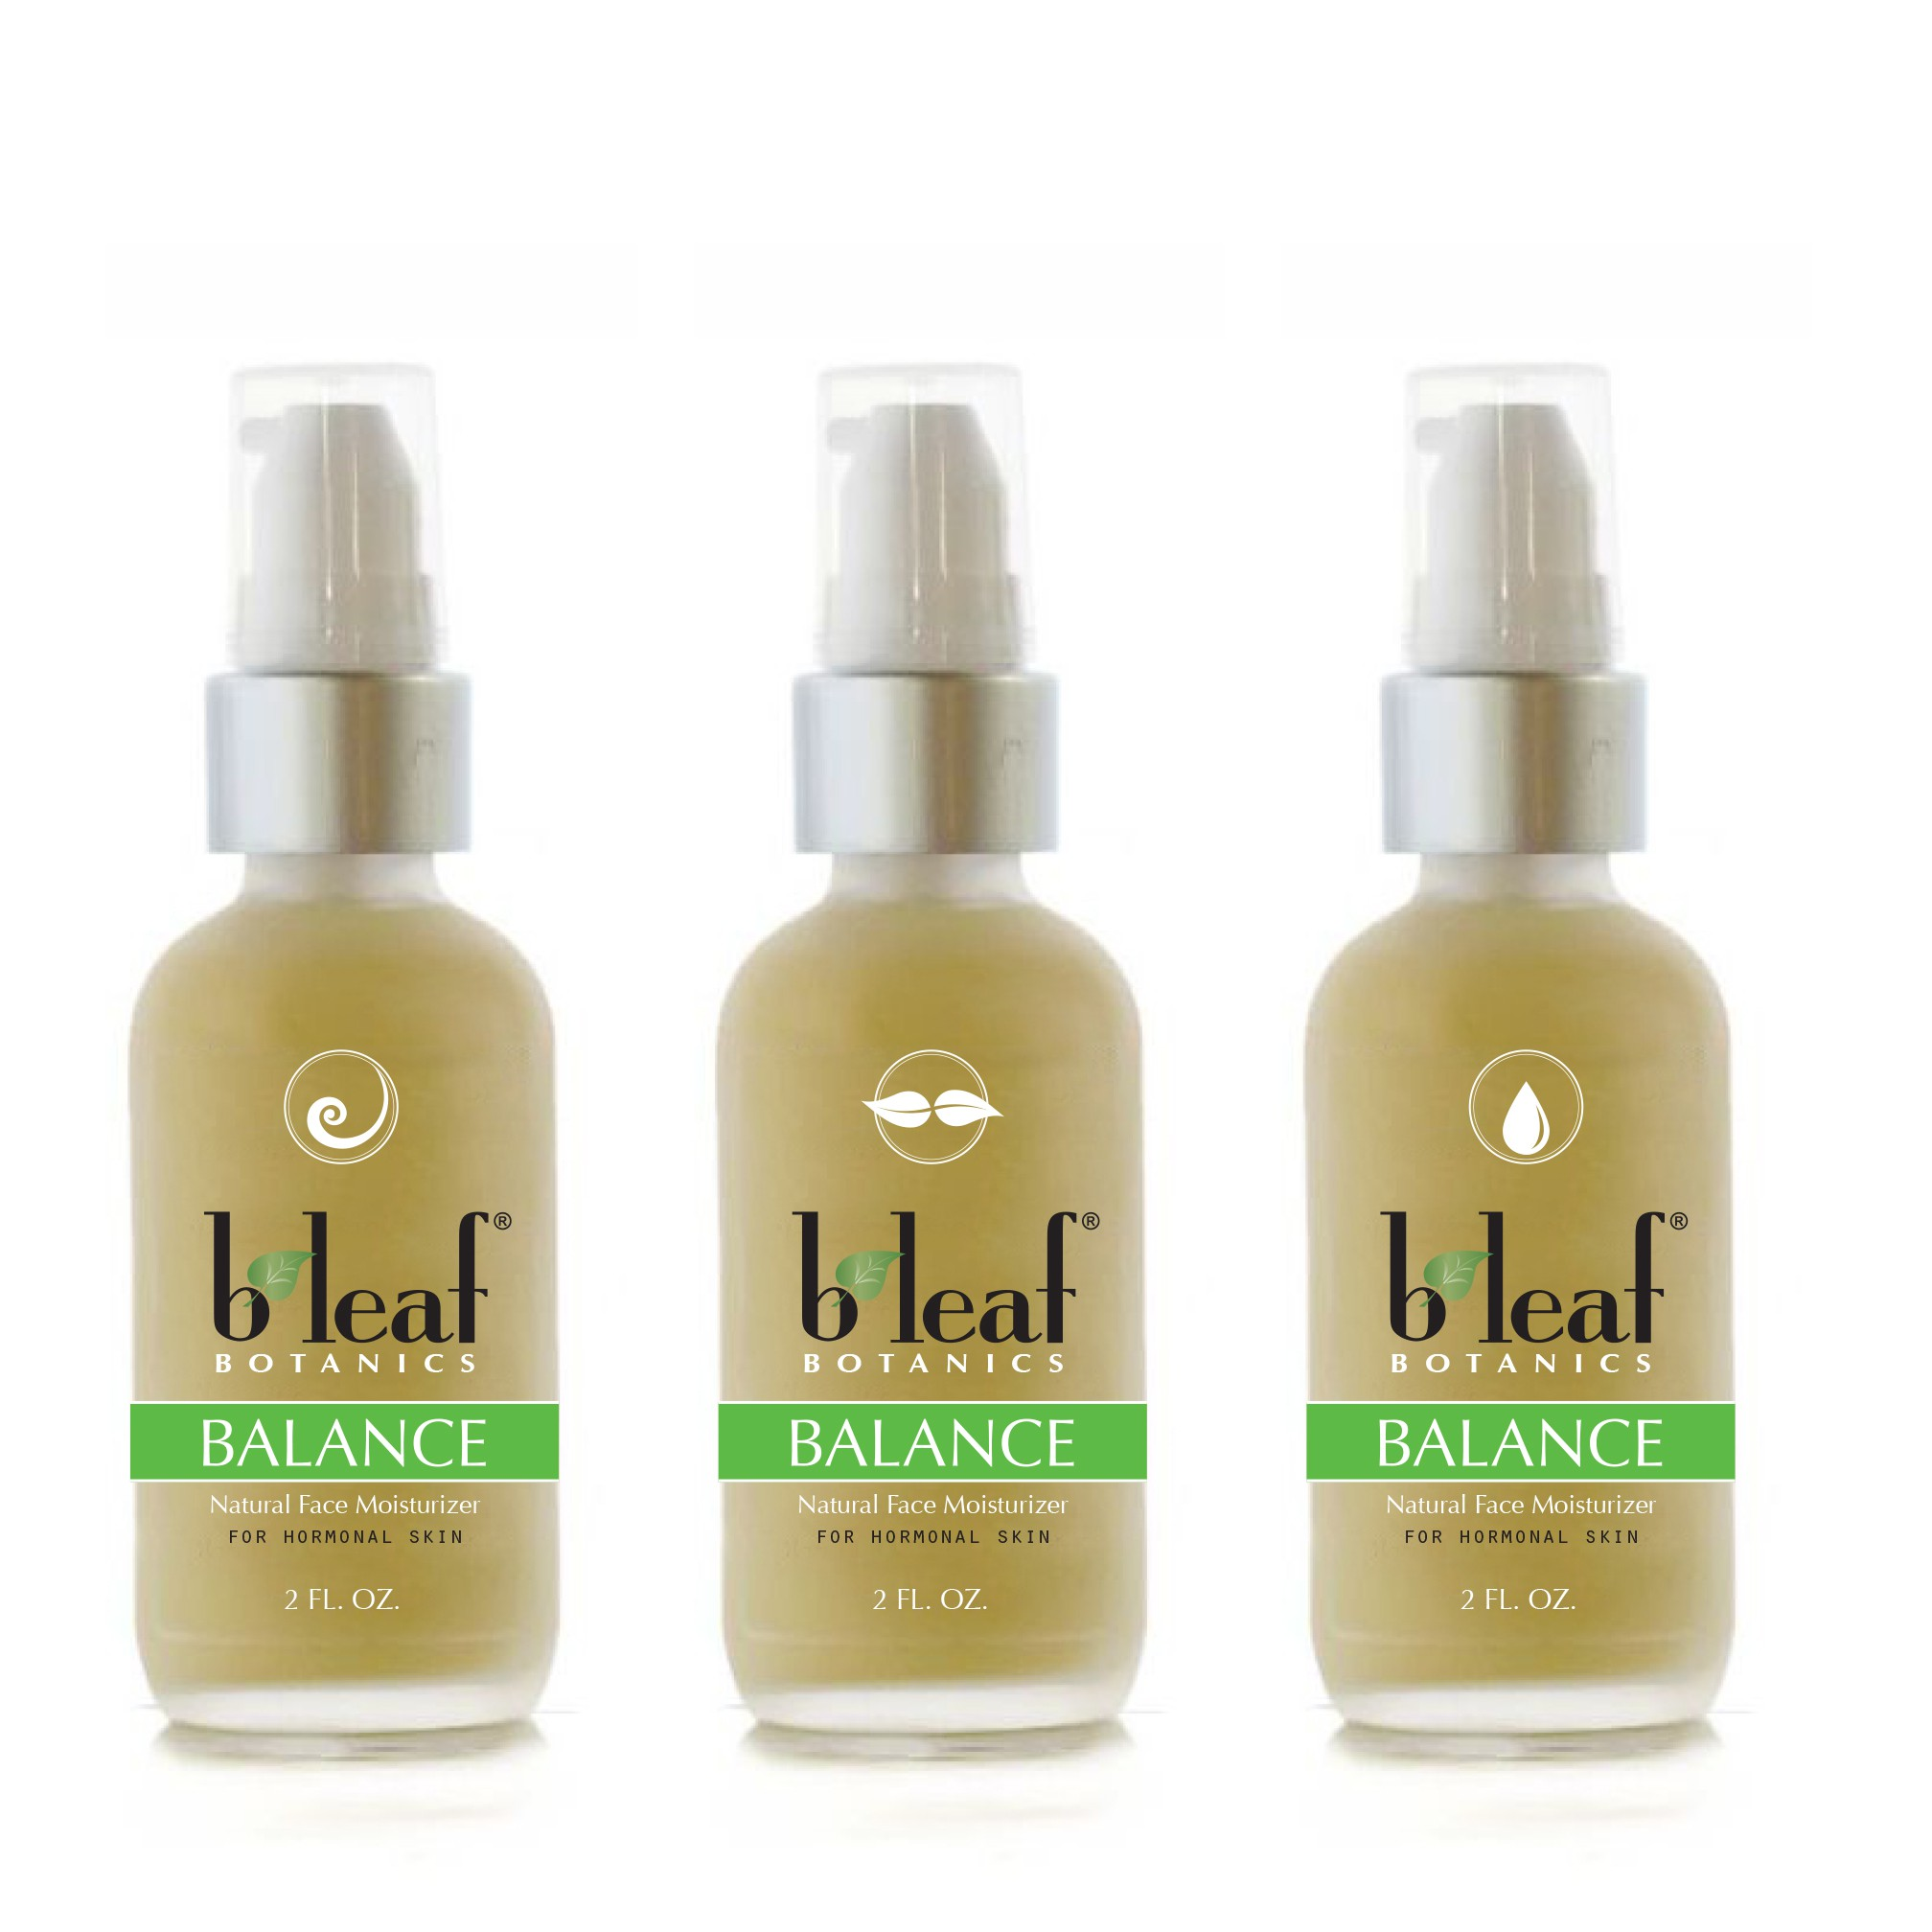 Create a fresh new label design for our B Leaf skin care products